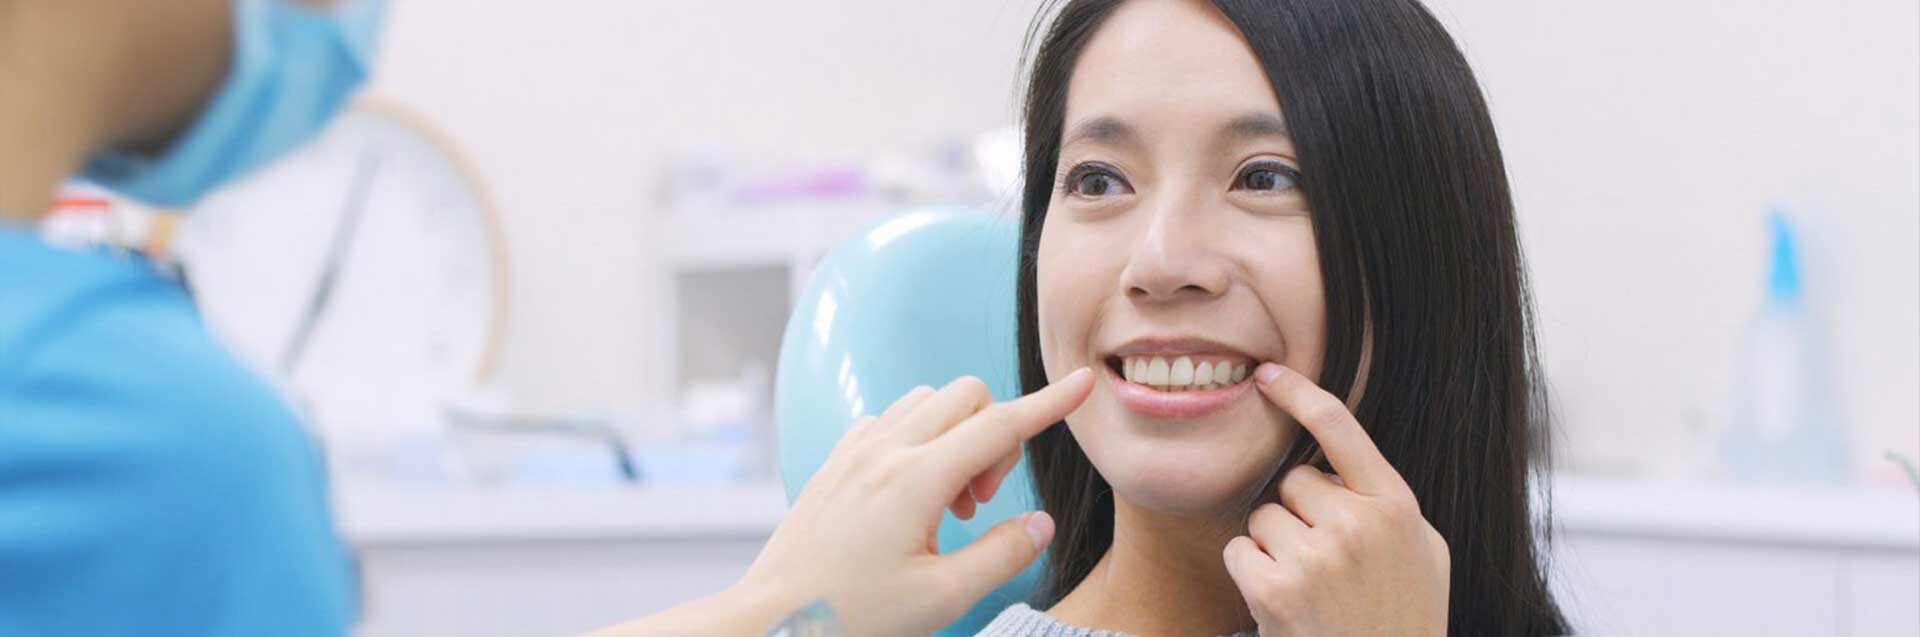 Woman pointing at her teeth to show dental implants